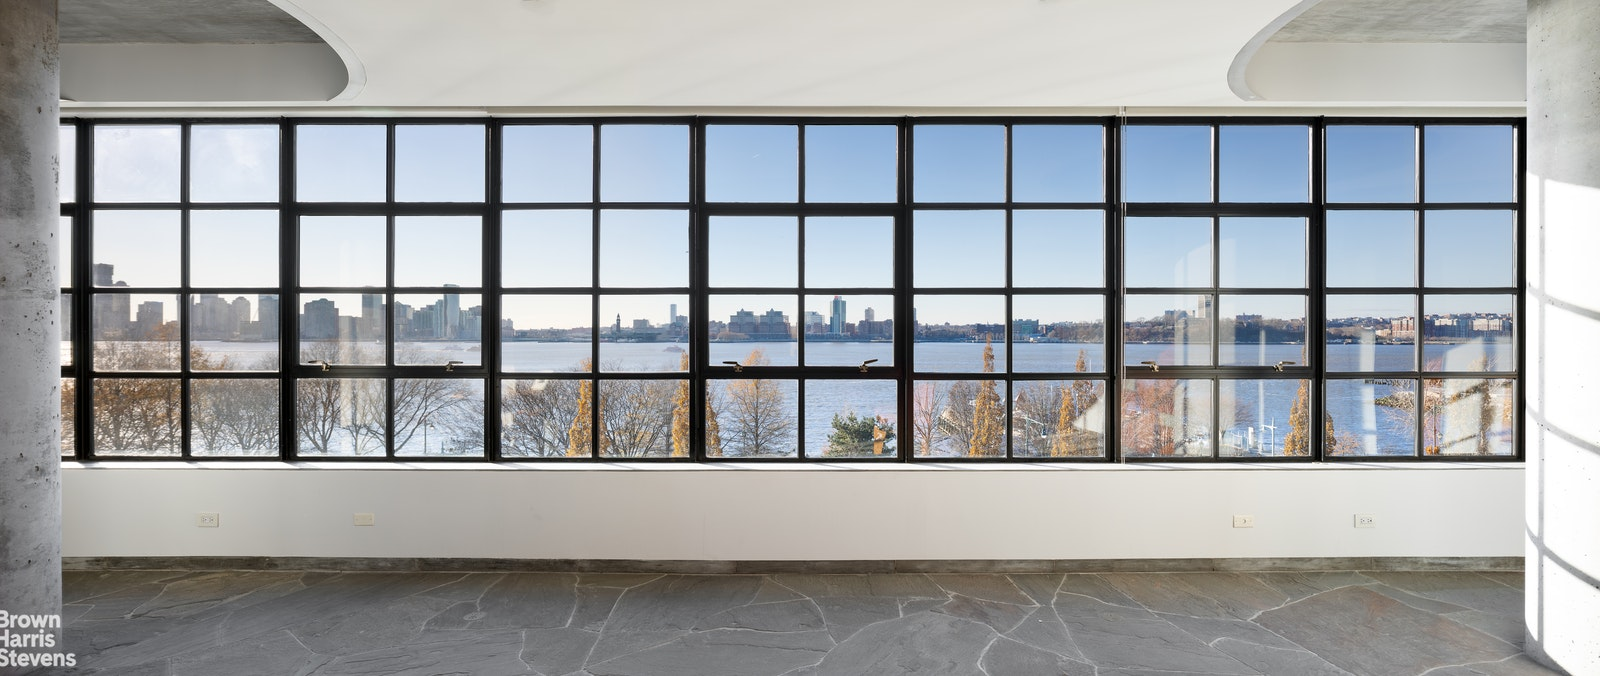 495 West Street 5, West Village, NYC, 10014, $7,495,000, Property For Sale, Halstead Real Estate, Photo 13